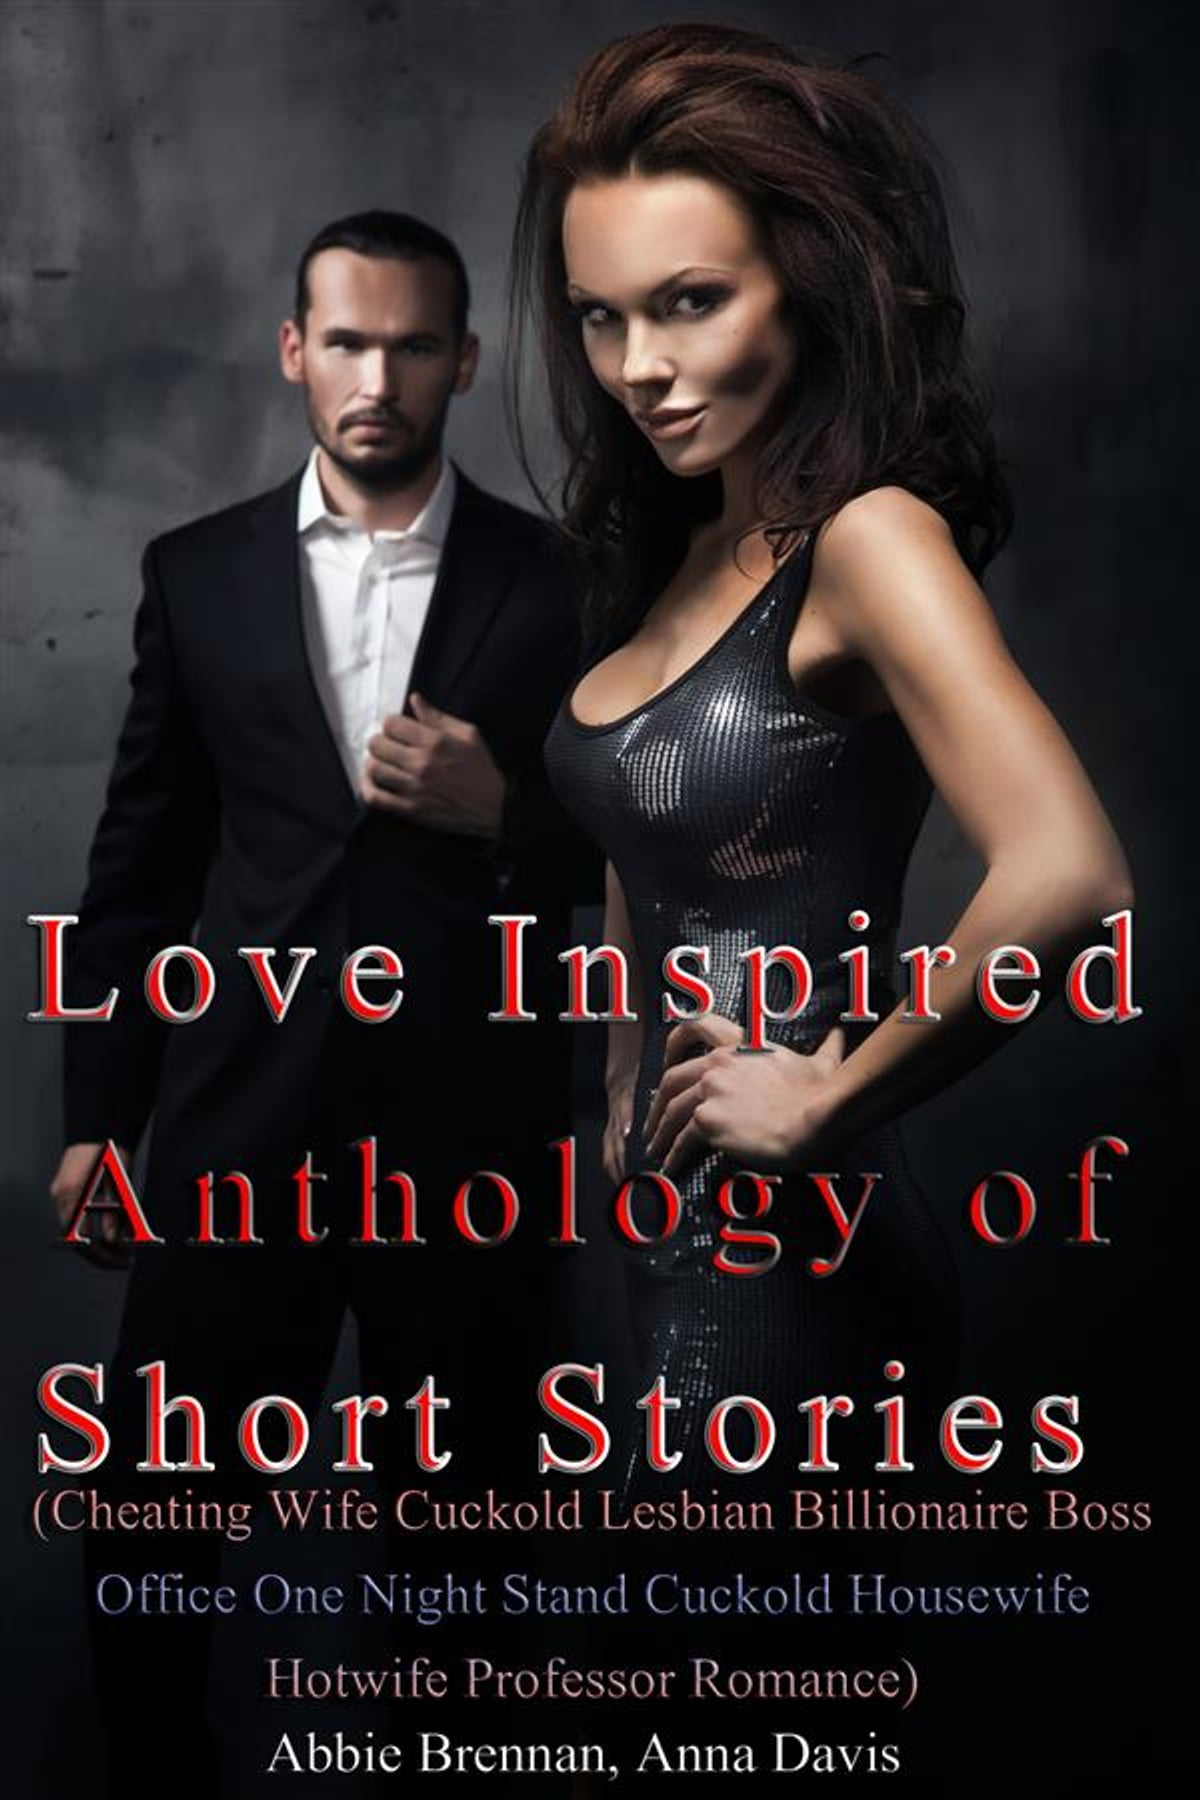 love inspired anthology of short stories (cheating wife cuckold